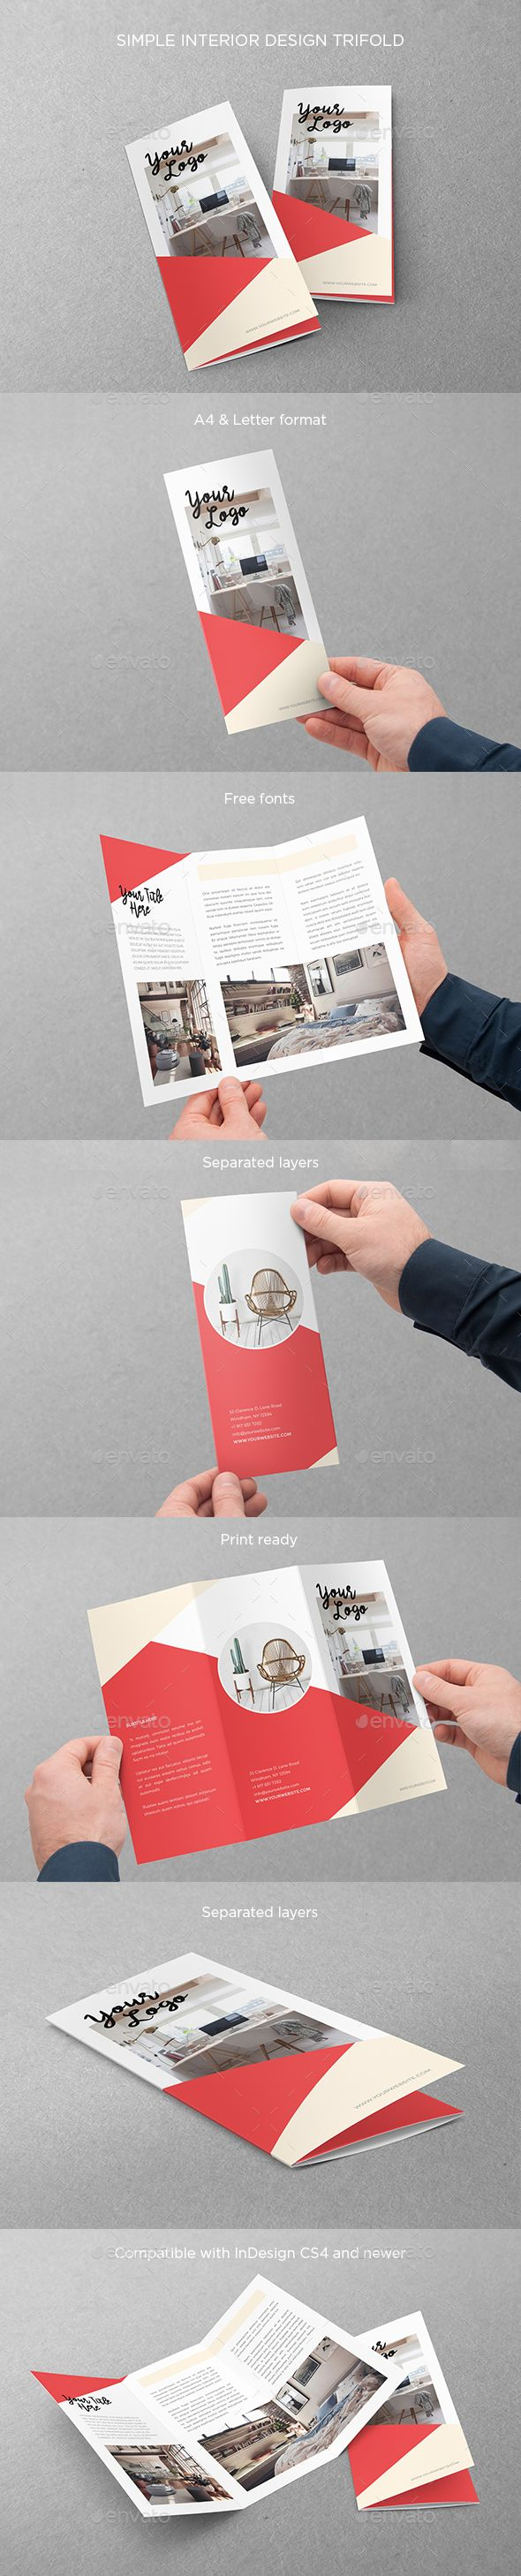 Simple interior design trifold brochures layouts and for Interior design brochures